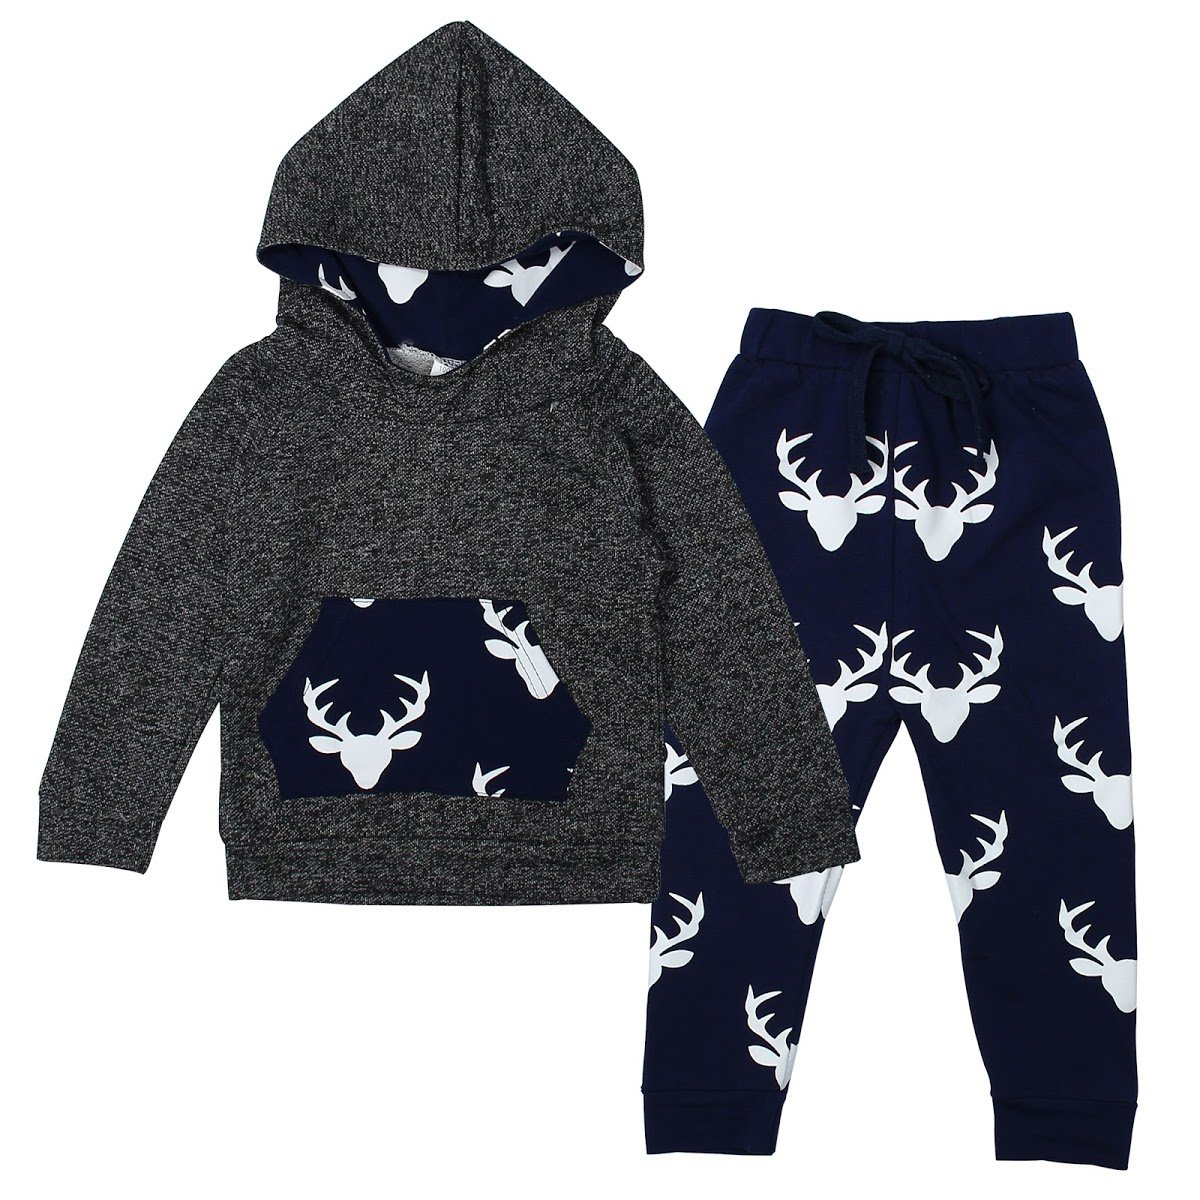 Evaliana Baby Boys Kids Toddlers Infants Antler Hoodies Pants Outfits Track Suit